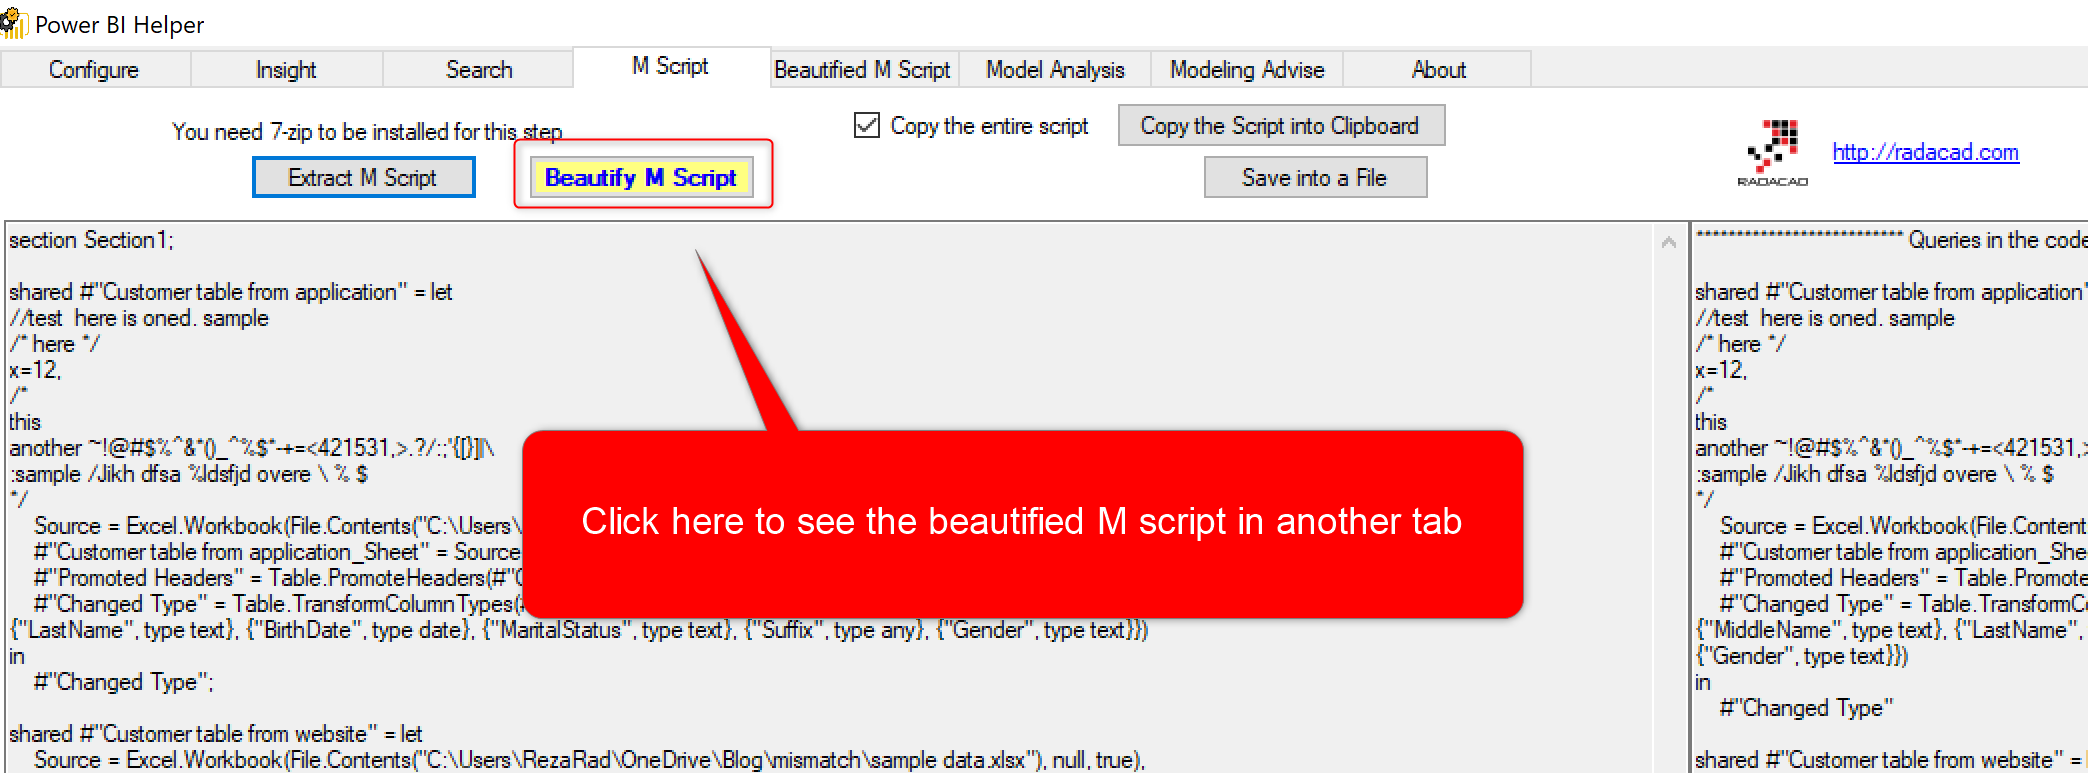 Beautify M Script and Extract Row Level Security with Power BI